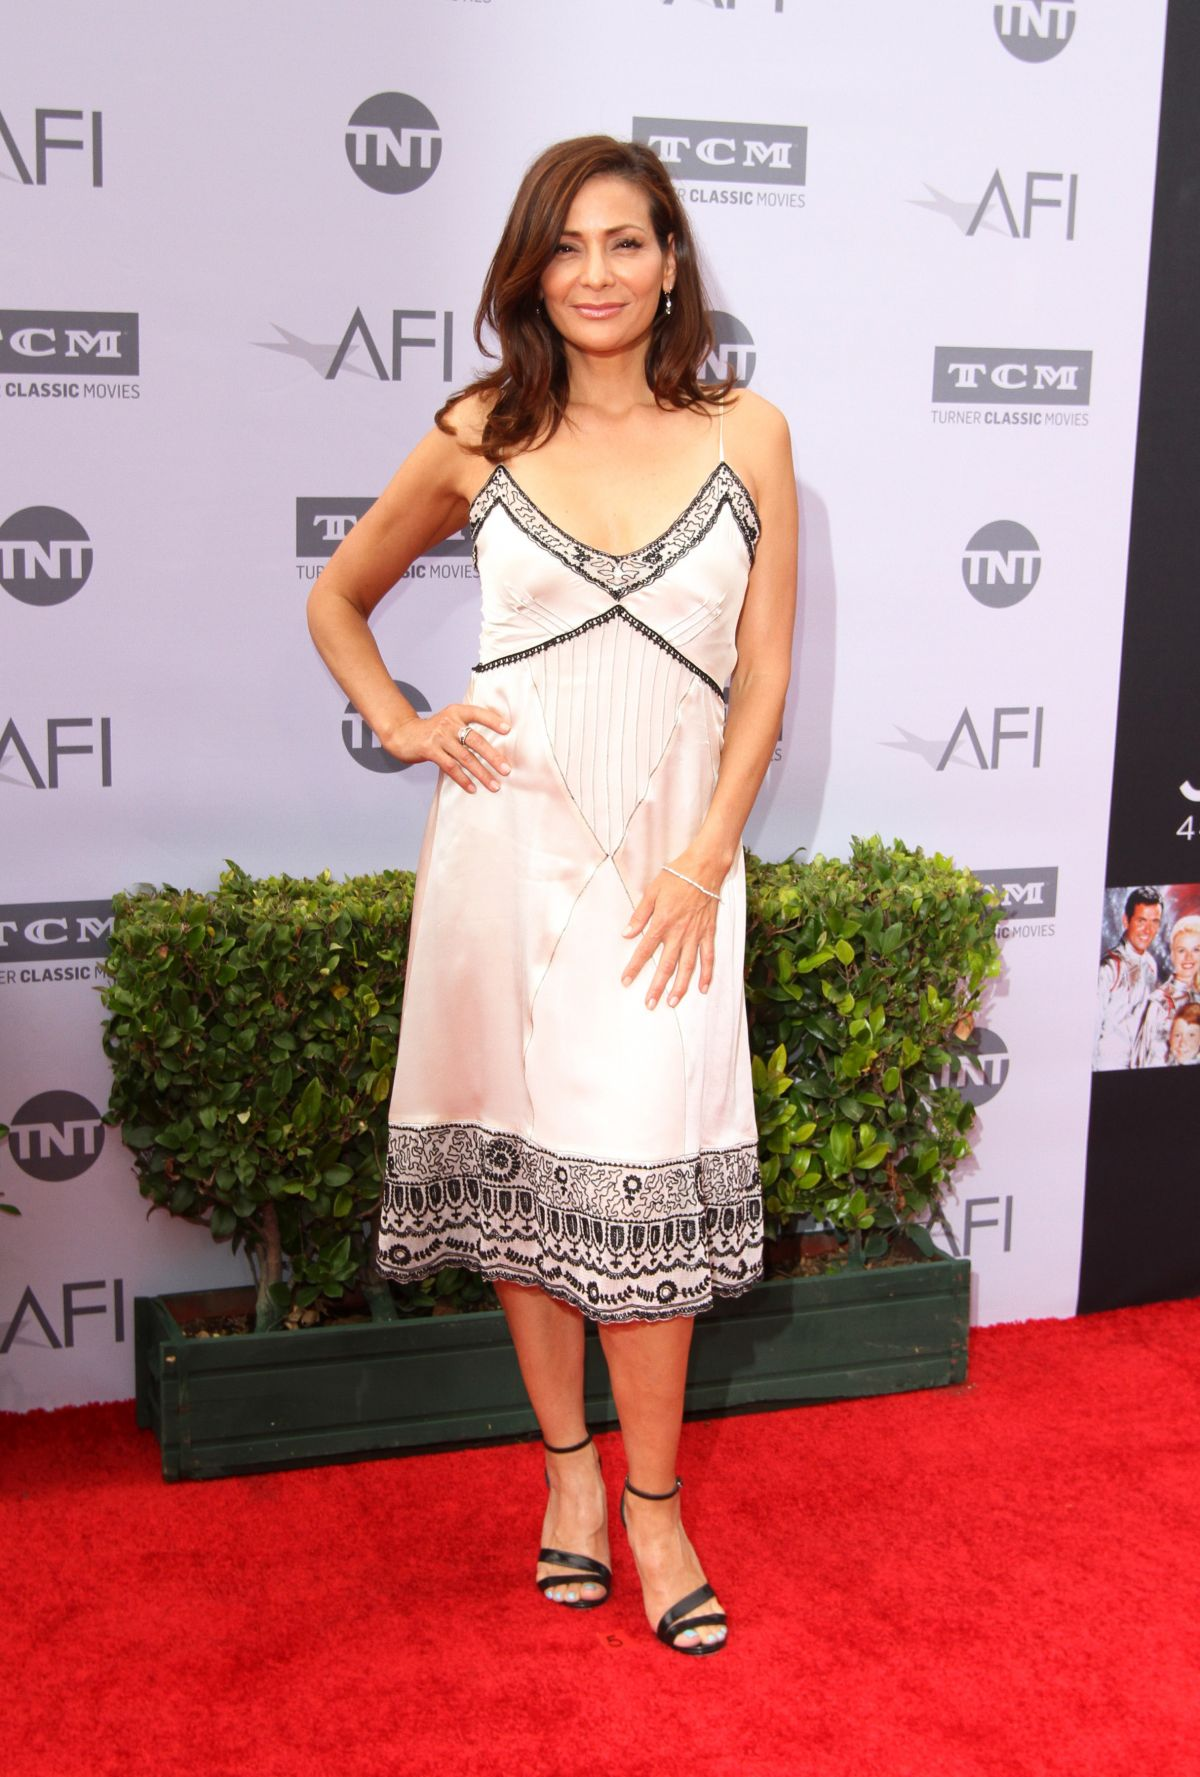 CONSTANCE MARIE at afi John Williams Gala in Hollywood 06/09/2016